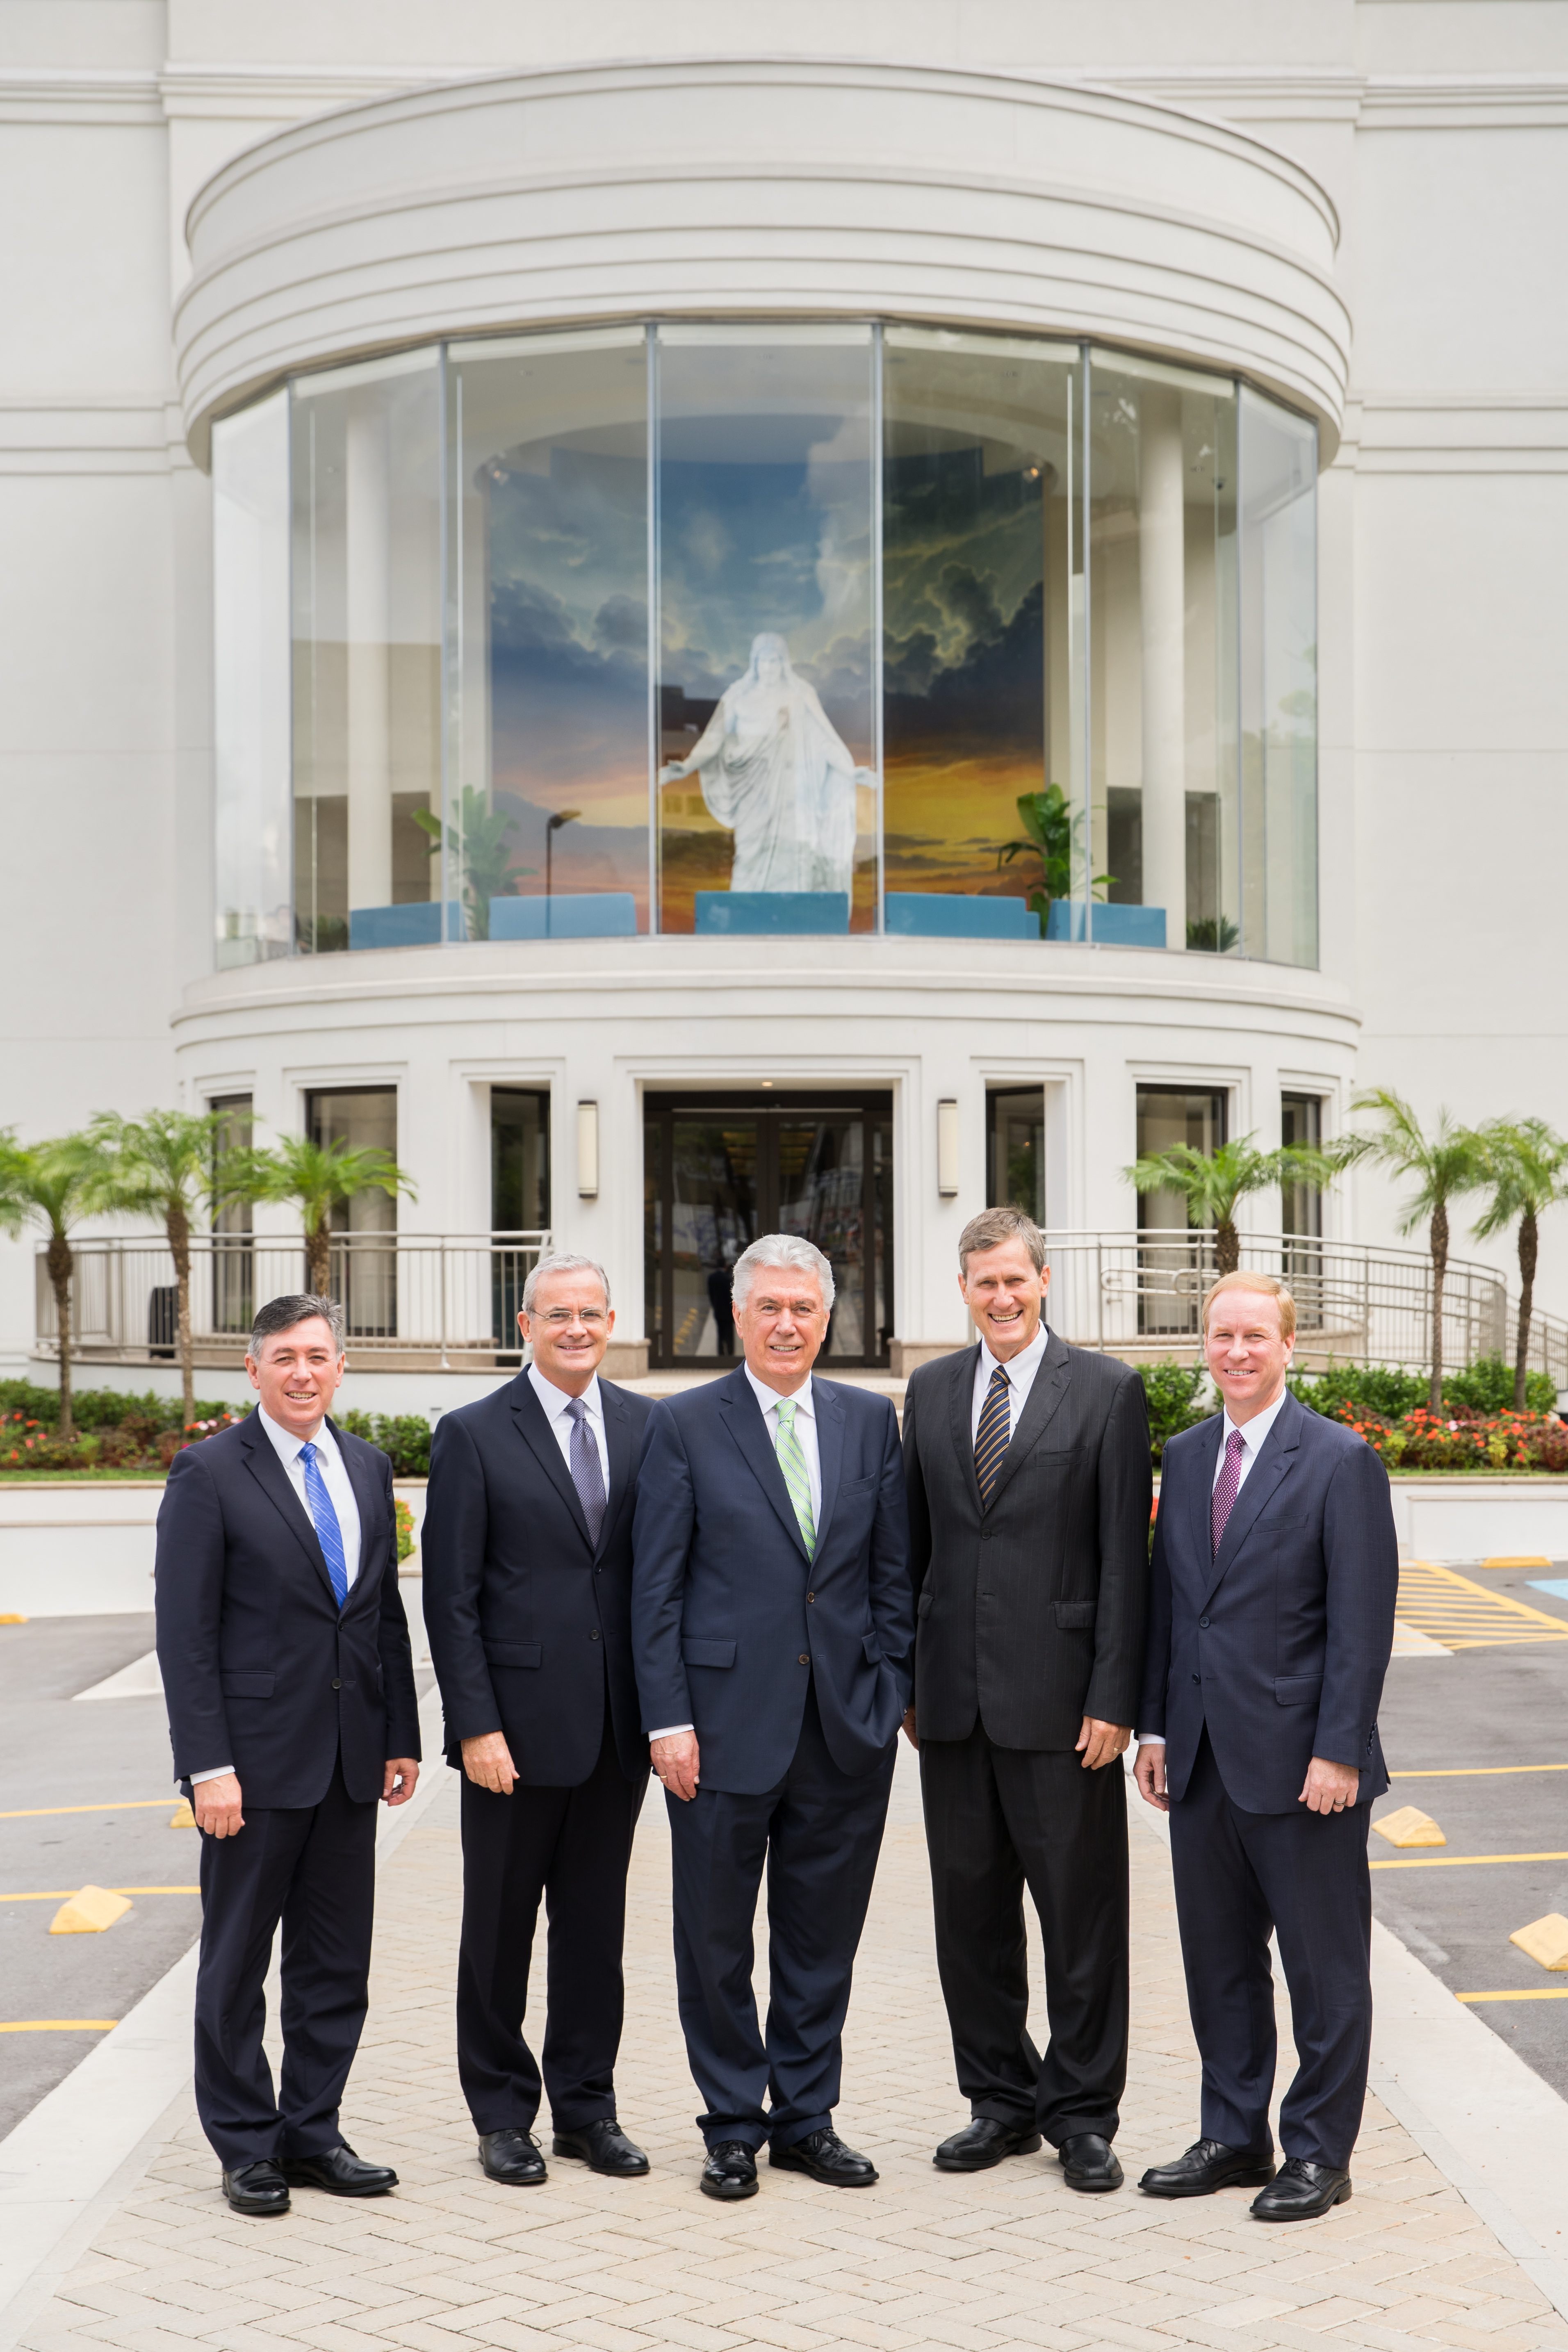 Standing outside the recently opened Sao Paulo Brazil Temple Visitors' Center is, from left, Elder Adilson de Paula Parrella, second counselor in the Brazil Area presidency; Elder Patrick Kearon of the Presidency of the Seventy; Elder Dieter F. Uchtdorf of the Quorum of the Twelve Apostles; Elder Marcos A. Aidukaitis, president of the Brazil Area; and Elder W. Mark Bassett, first counselor in the Brazil Area presidency.